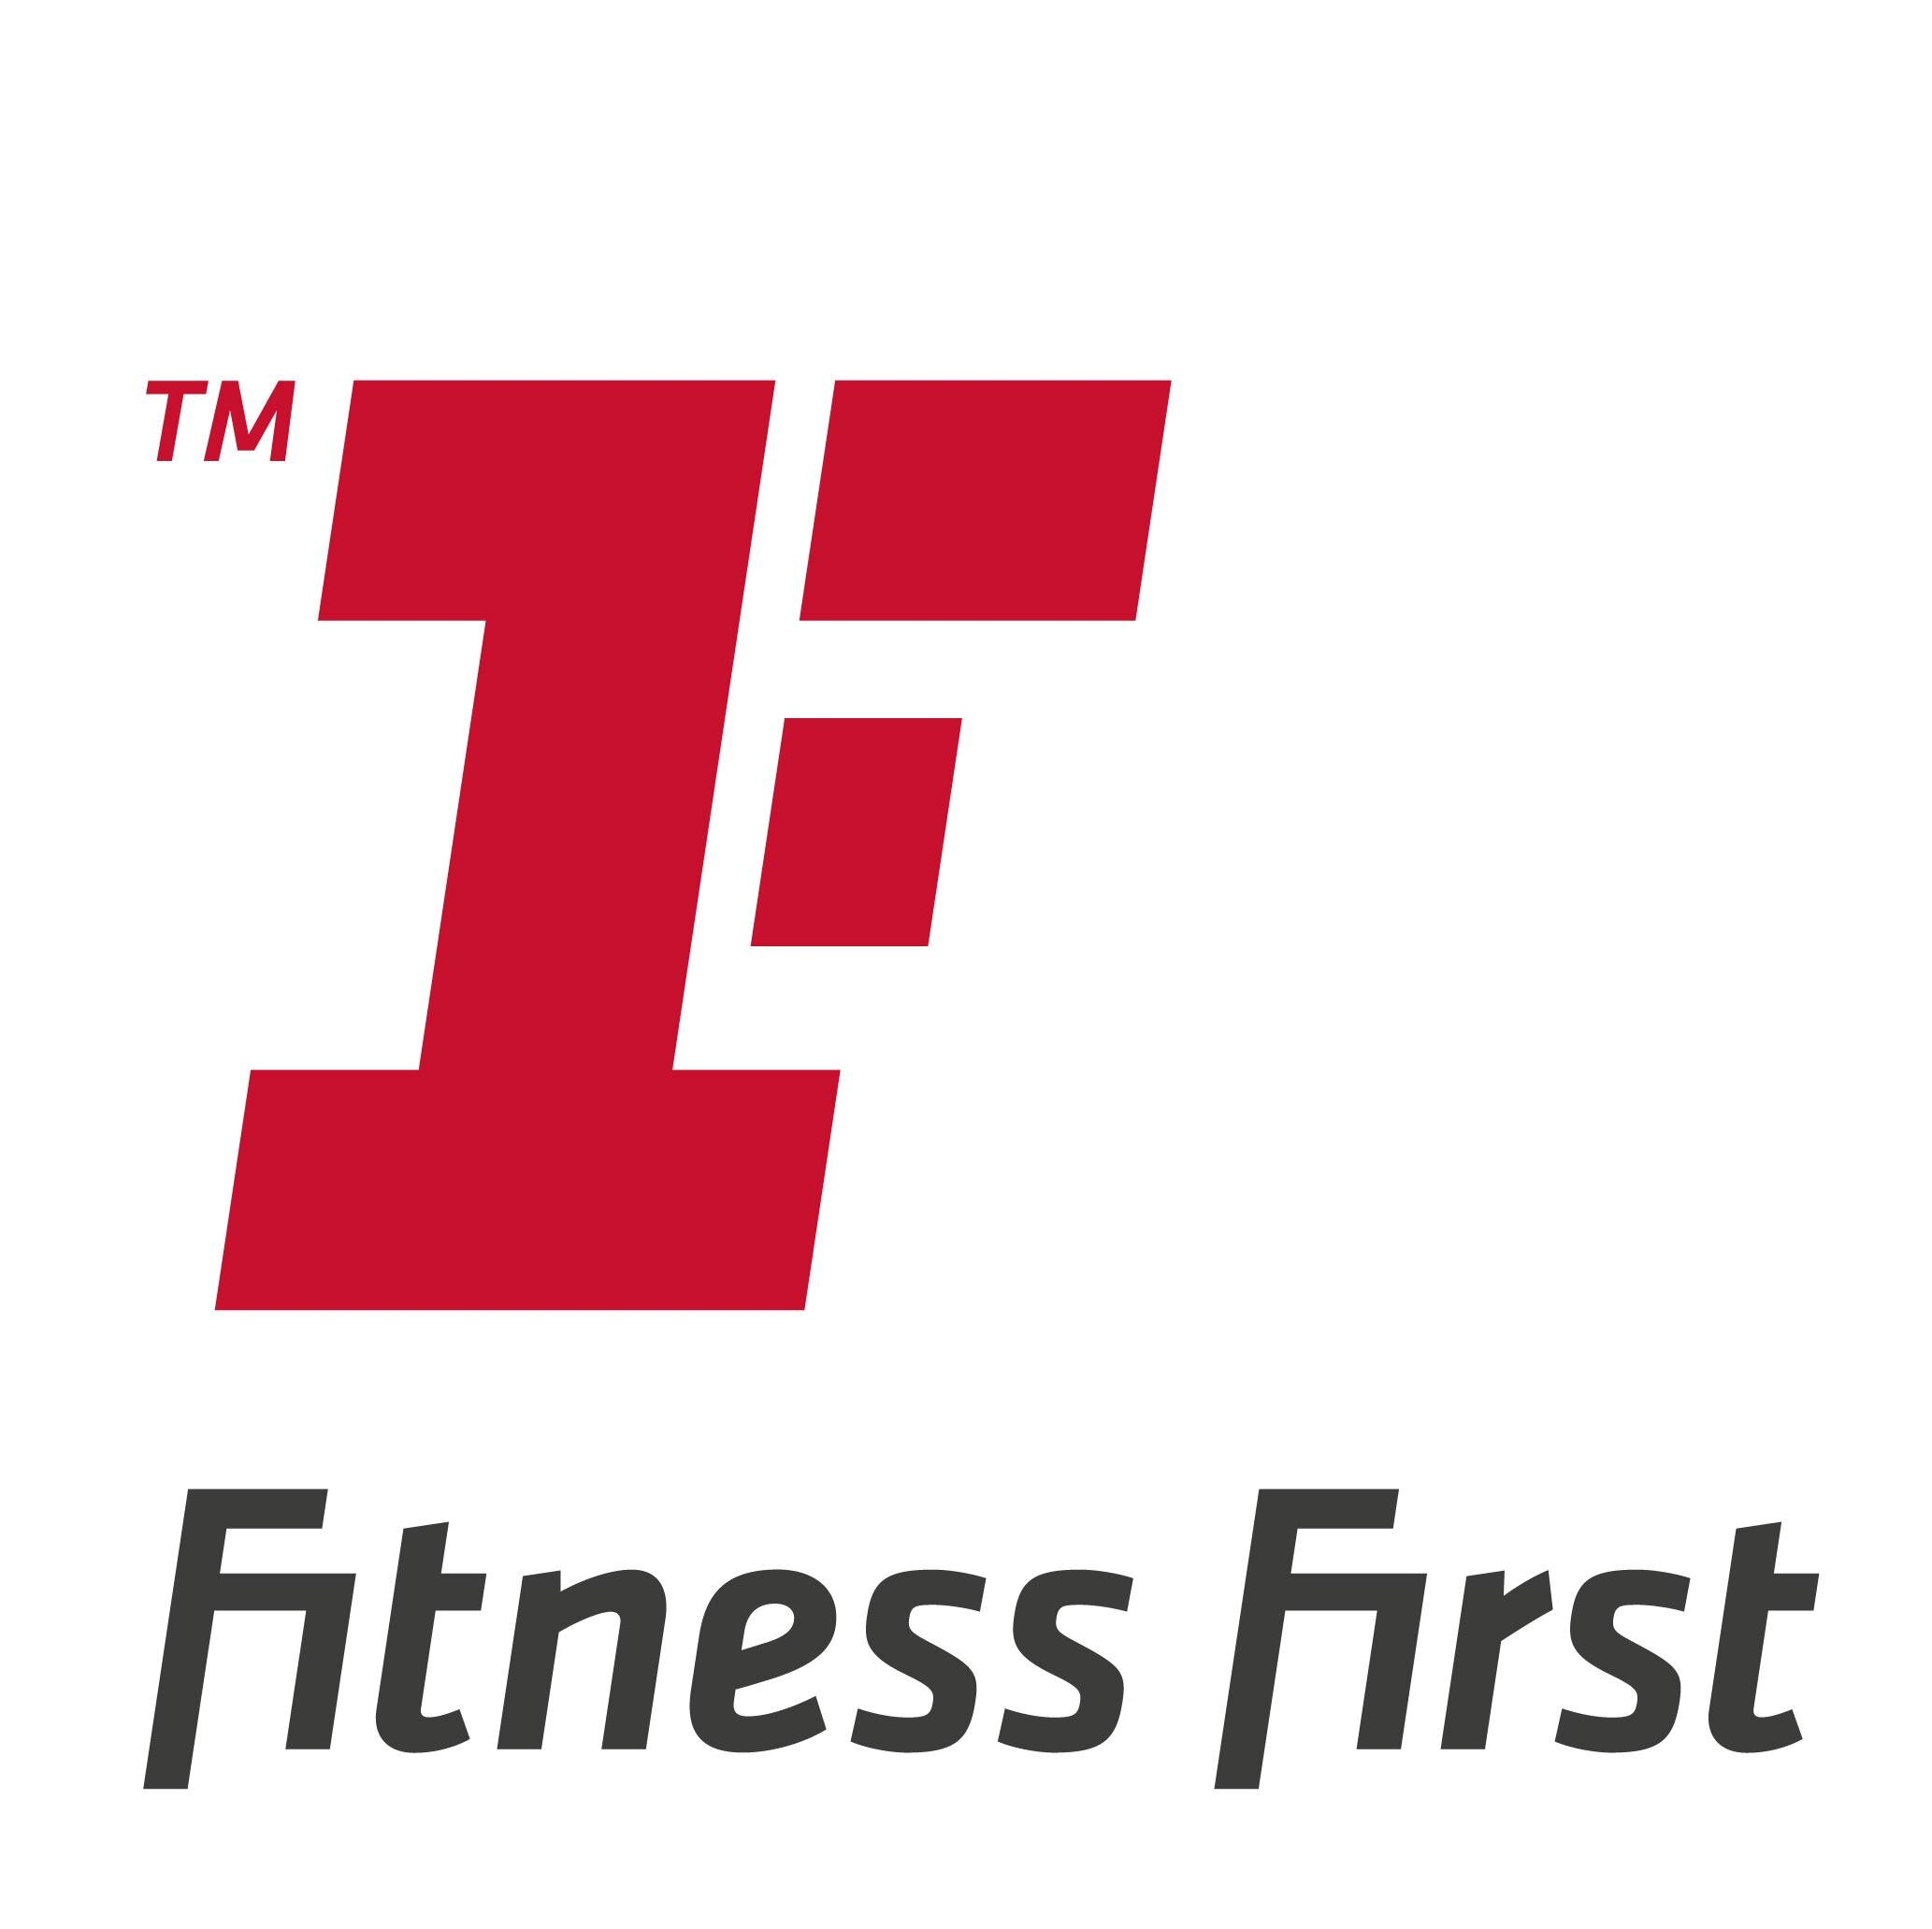 Fitness first sg fitnessfirstsg twitter - Fitness first swimming pool singapore ...